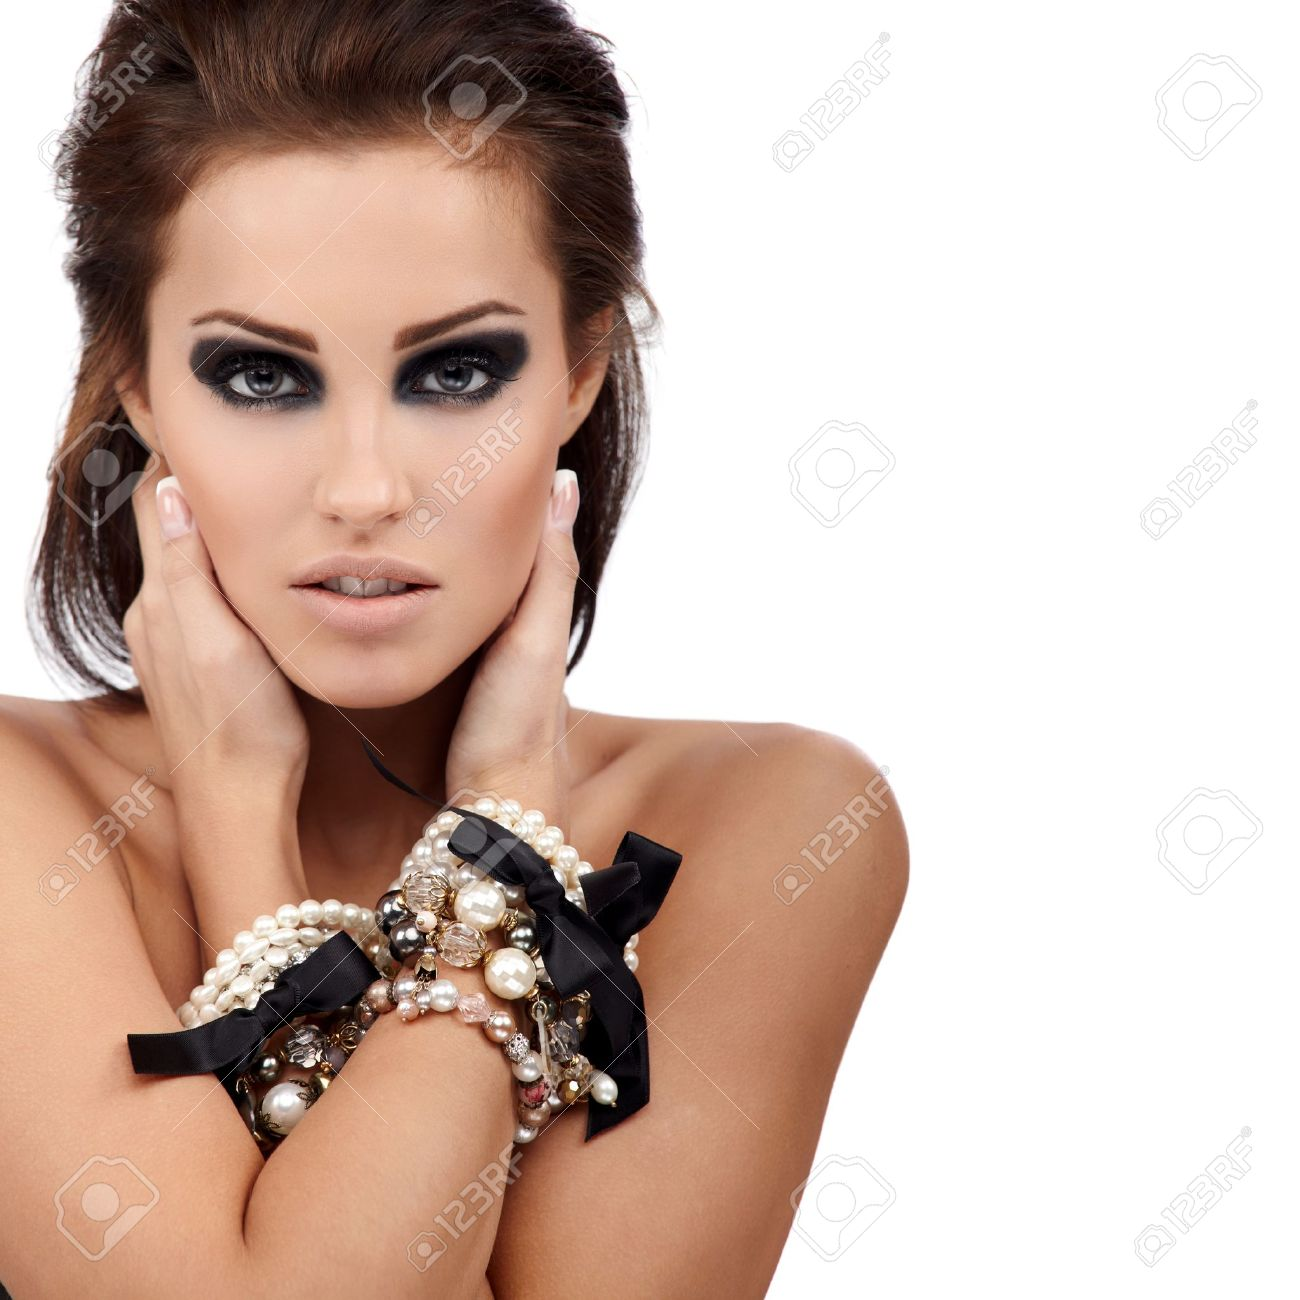 Young brunette lady with luxury accessories isolated on white background Stock Photo - 8314469